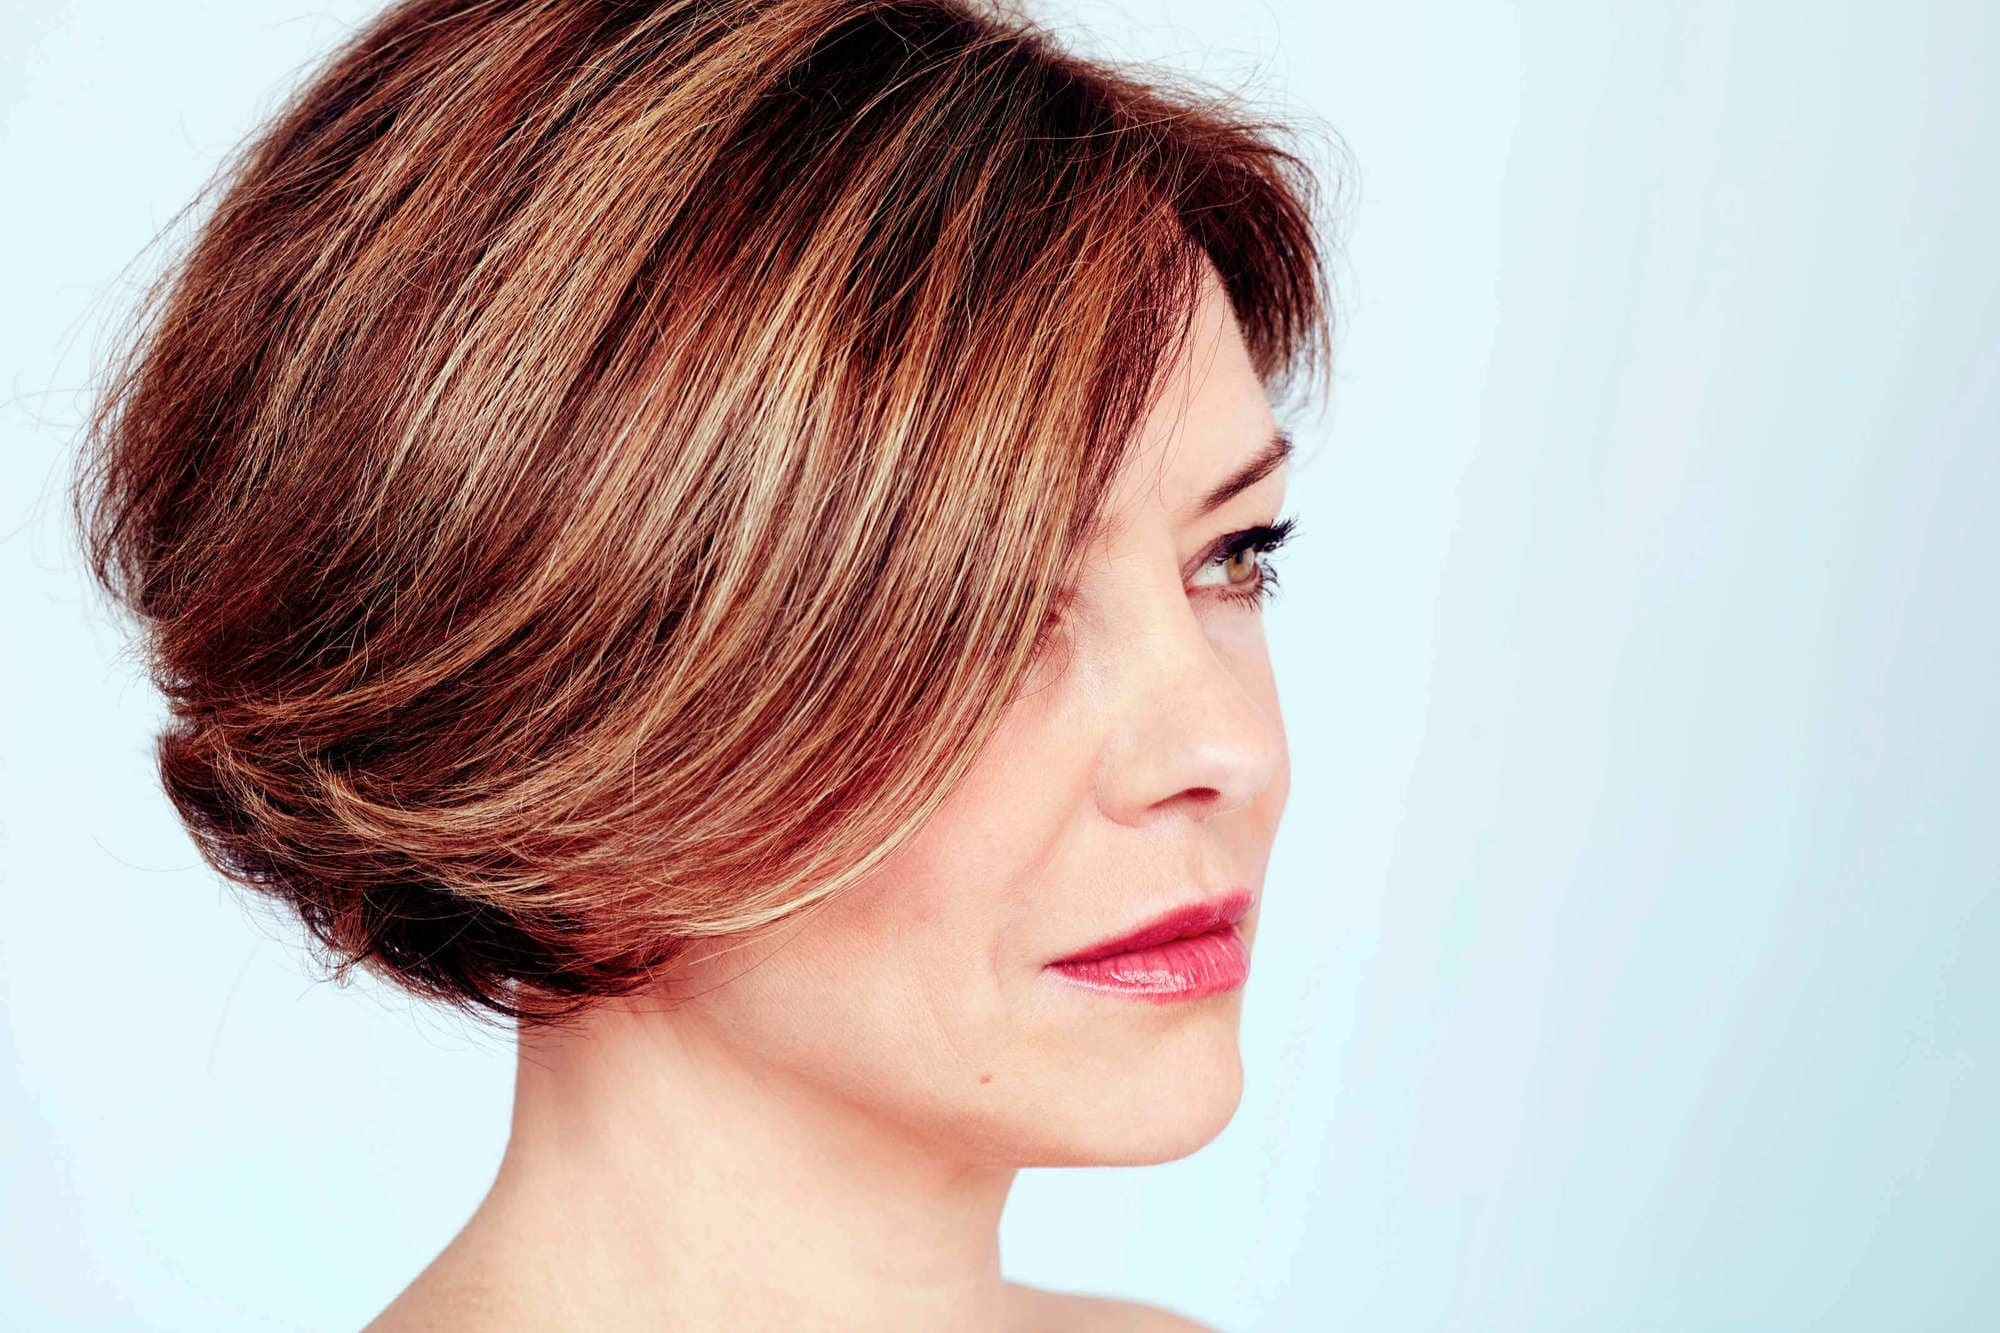 5 Cool Shoulder Length And Short Haircuts For Women Over 40 Within Short Haircuts For Women Over  (View 16 of 25)